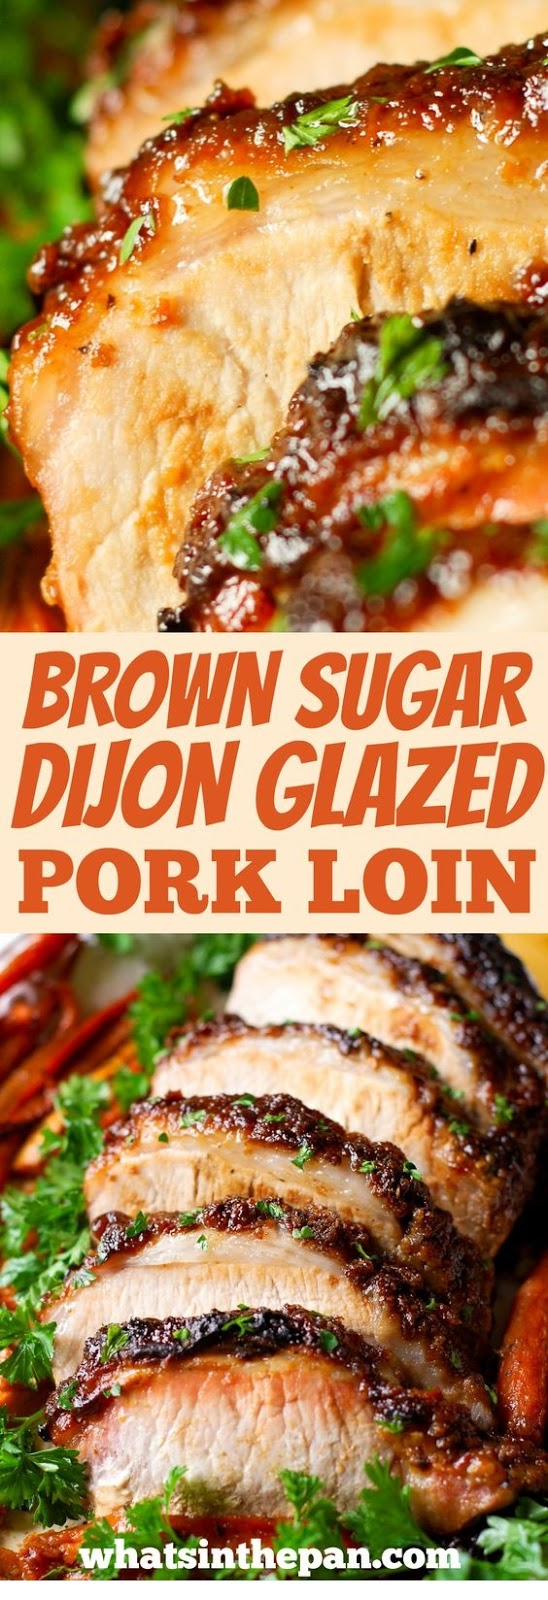 Brown Sugar Dijon Glazed Pork Loin With Carrots, Apples And Sweet Potatoes